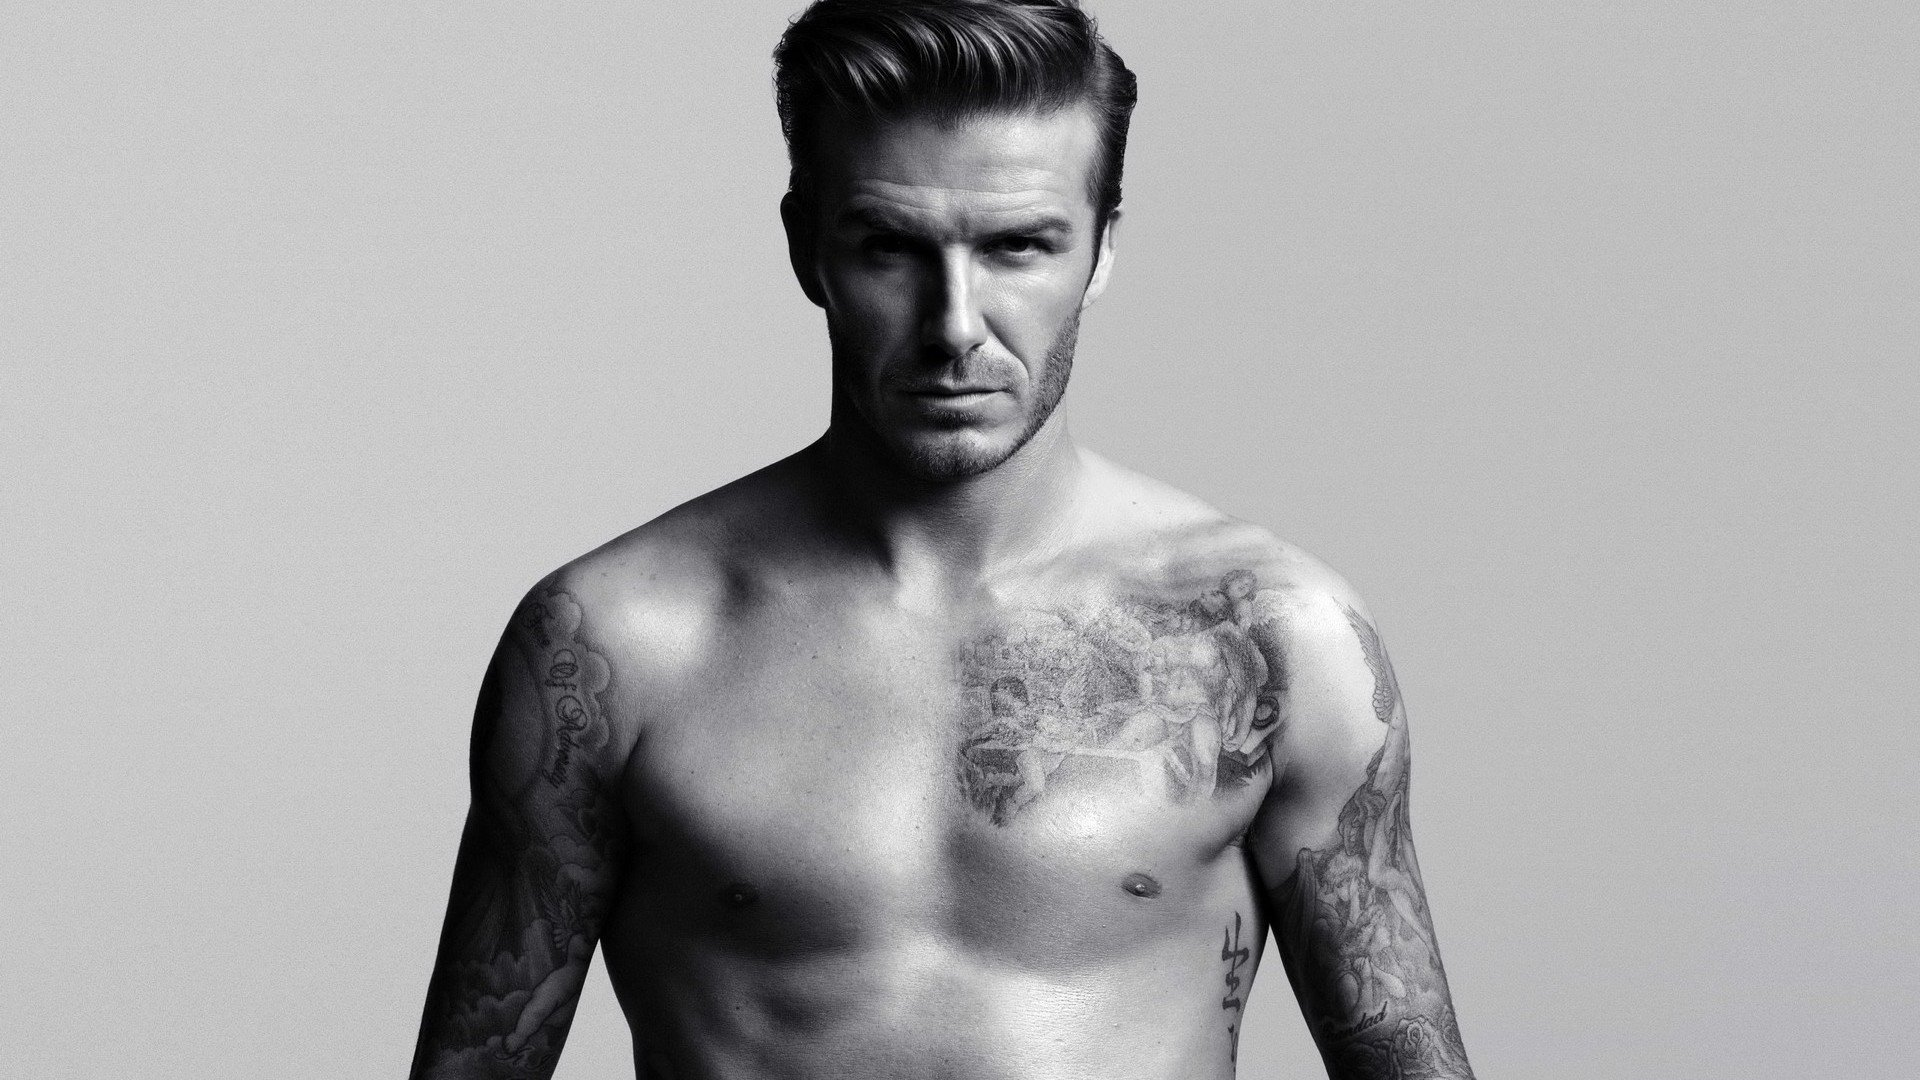 David Beckham Desktop Wallpaper